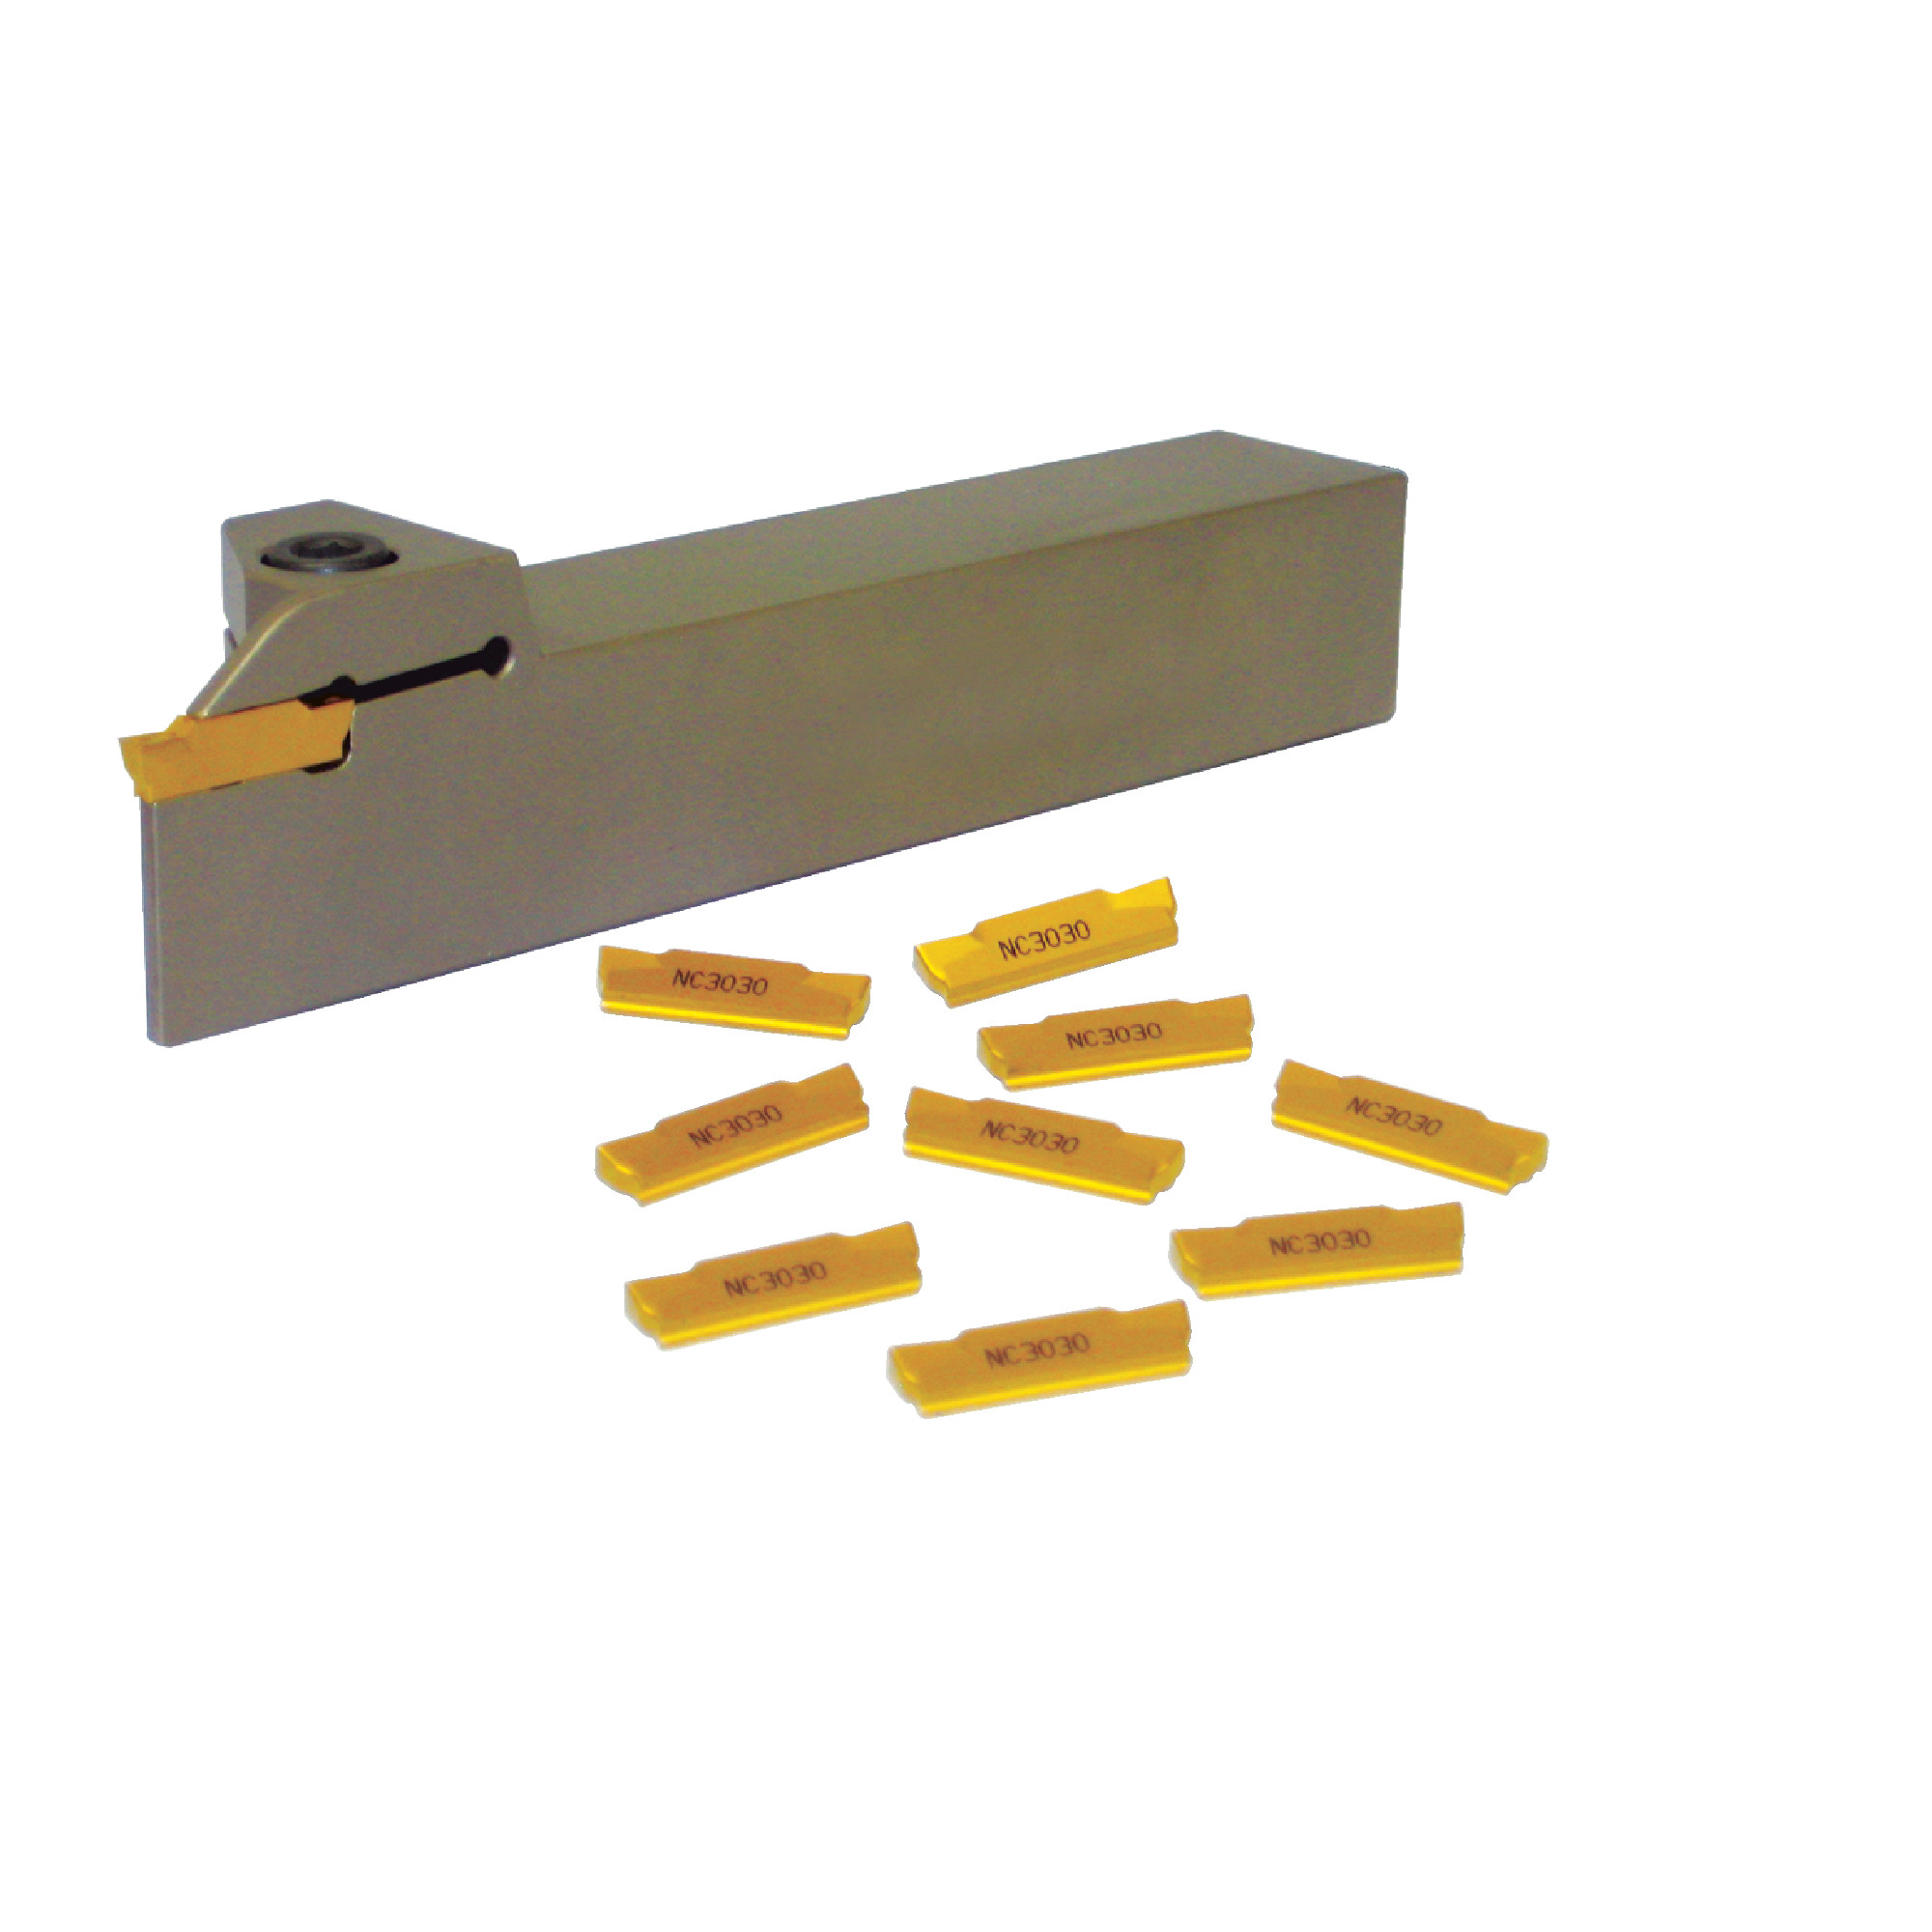 """KORLOY -  / 0.750"""" Shank / Set for Grooving, Parting, & Turning / with (10) MGMN200-M NC3030 (0.079"""" Cutting Width) Inse"""